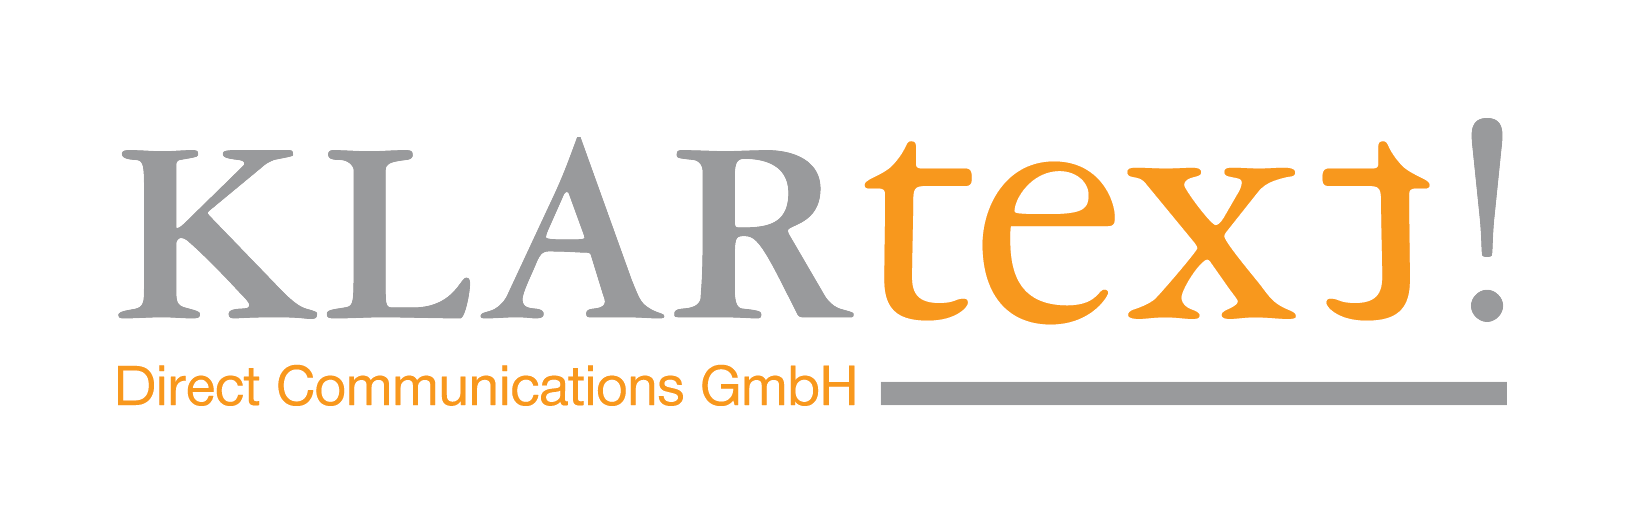 KLARtext Direct Communications GmbH